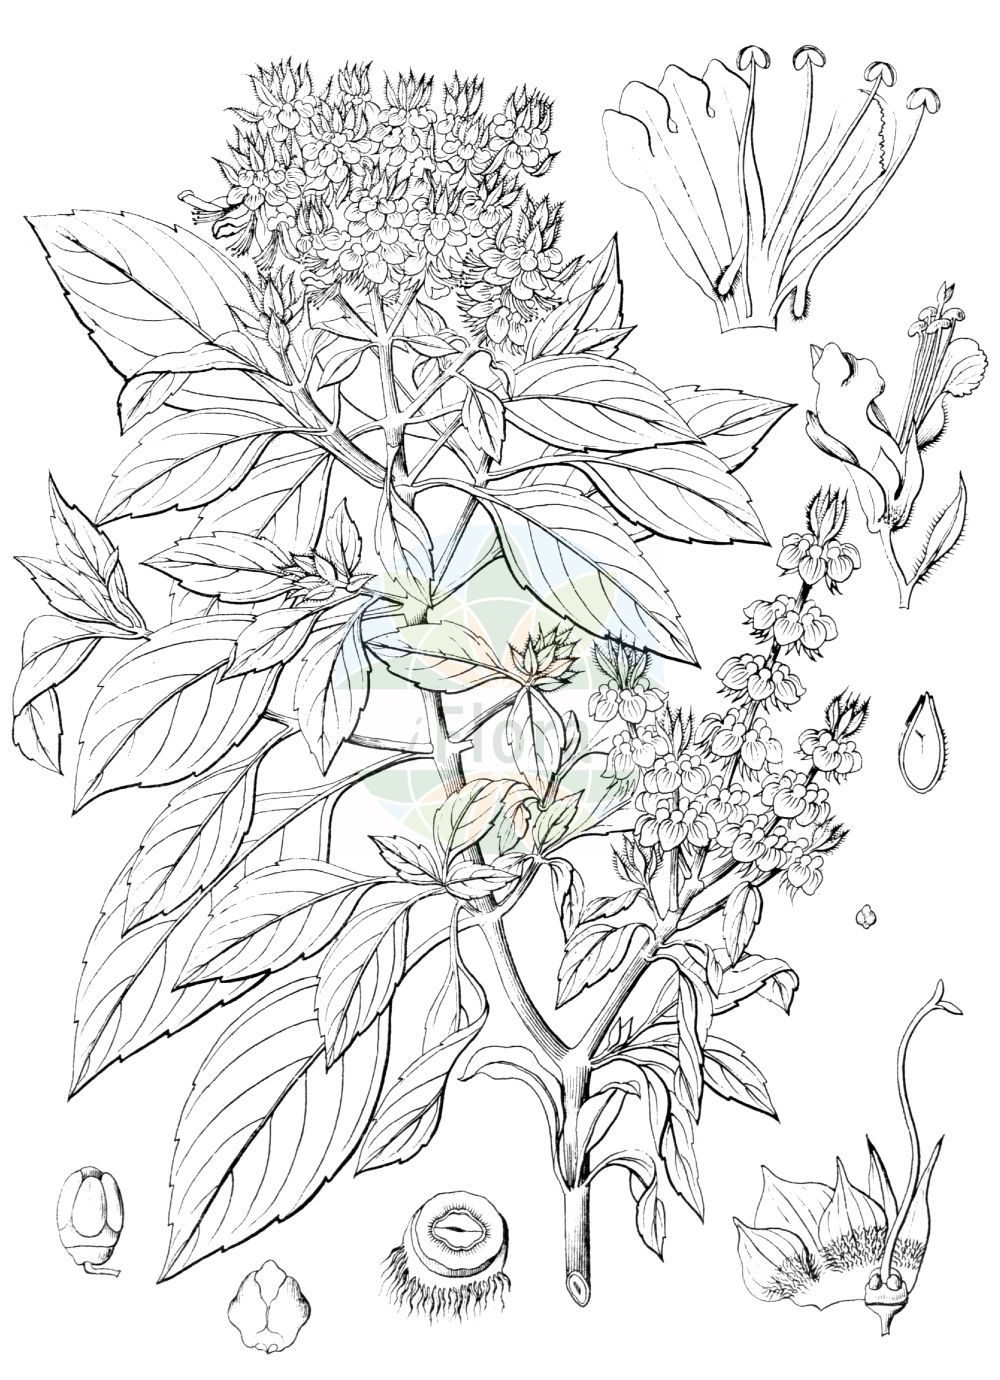 Historische Abbildung von Ocimum basilicum. Das Bild zeigt Blatt, Bluete, Frucht und Same. ---- Historical Drawing of Ocimum basilicum.The image is showing leaf, flower, fruit and seed.(Ocimum basilicum,Ocimum album,Ocimum anisatum,Ocimum barrelieri,Ocimum basilicum,Ocimum bullatum,Ocimum caryophyllatum,Ocimum chevalieri,Ocimum ciliare,Ocimum ciliatum,Ocimum citrodorum,Ocimum cochleatum,Ocimum dentatum,Ocimum hispidum,Ocimum integerrimum,Ocimum lanceolatum,Ocimum laxum,Ocimum majus,Ocimum medium,Ocimum minus,Ocimum nigrum,Ocimum odorum,Ocimum scabrum,Ocimum simile,Ocimum thyrsiflorum,Ocimum urticifolium,Plectranthus barrelieri,Ocimum,Lamiaceae,Lippenbluetengewaechse,Lippenbluetler,Nettle family,Blatt,Bluete,Frucht,Same,leaf,flower,fruit,seed,Wight (1840-1850))